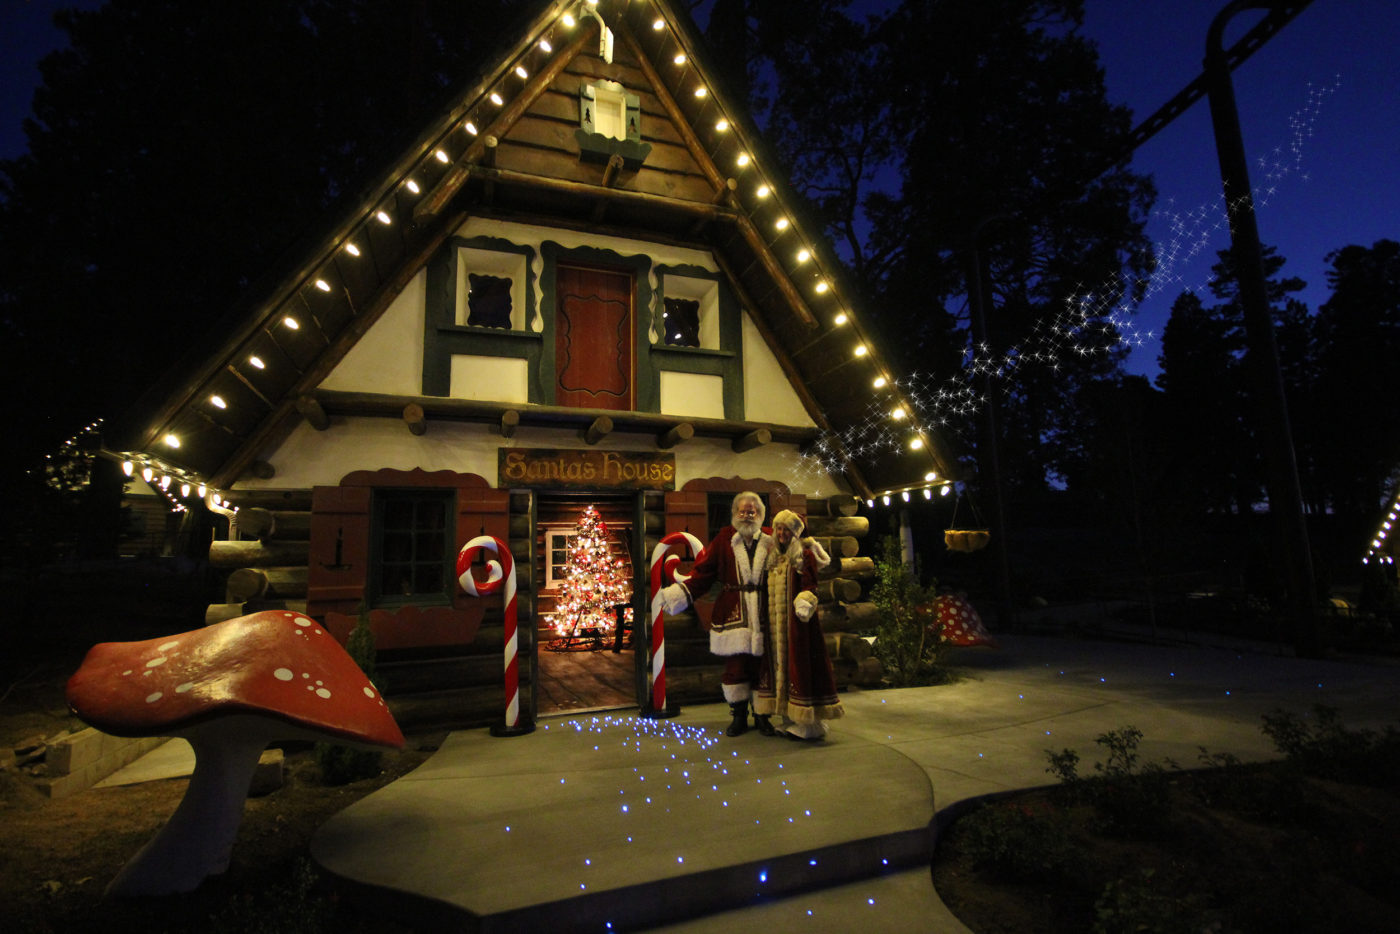 Santa's House and North Pole - SkyPark at Santa's Village